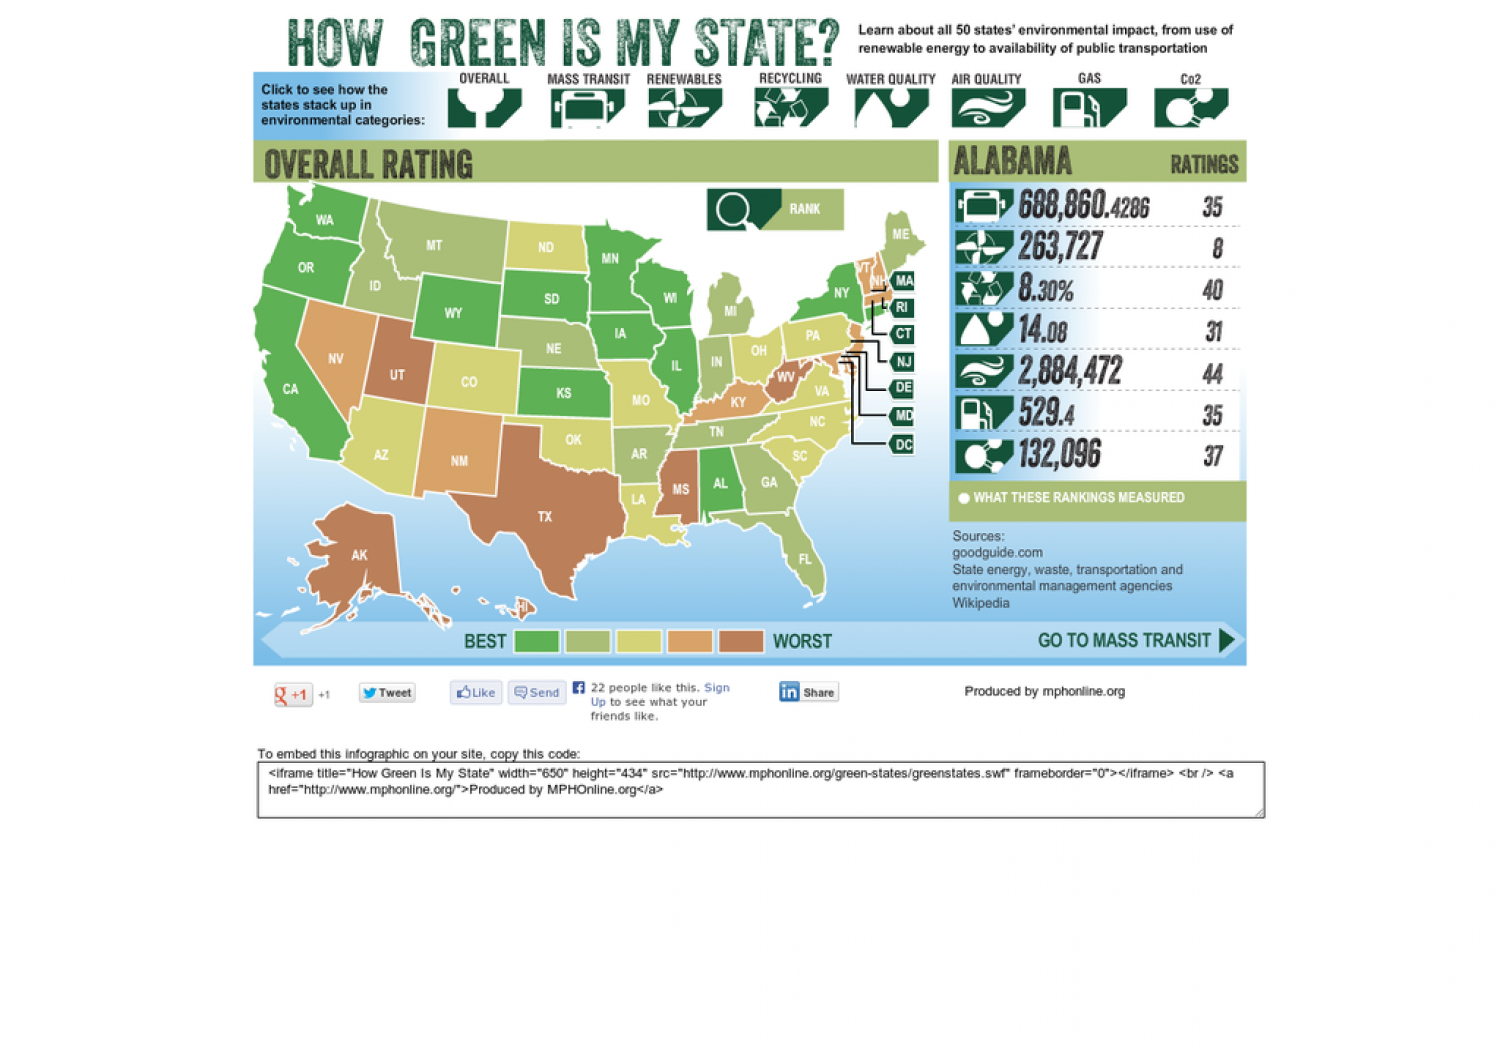 How Green is My State? Infographic